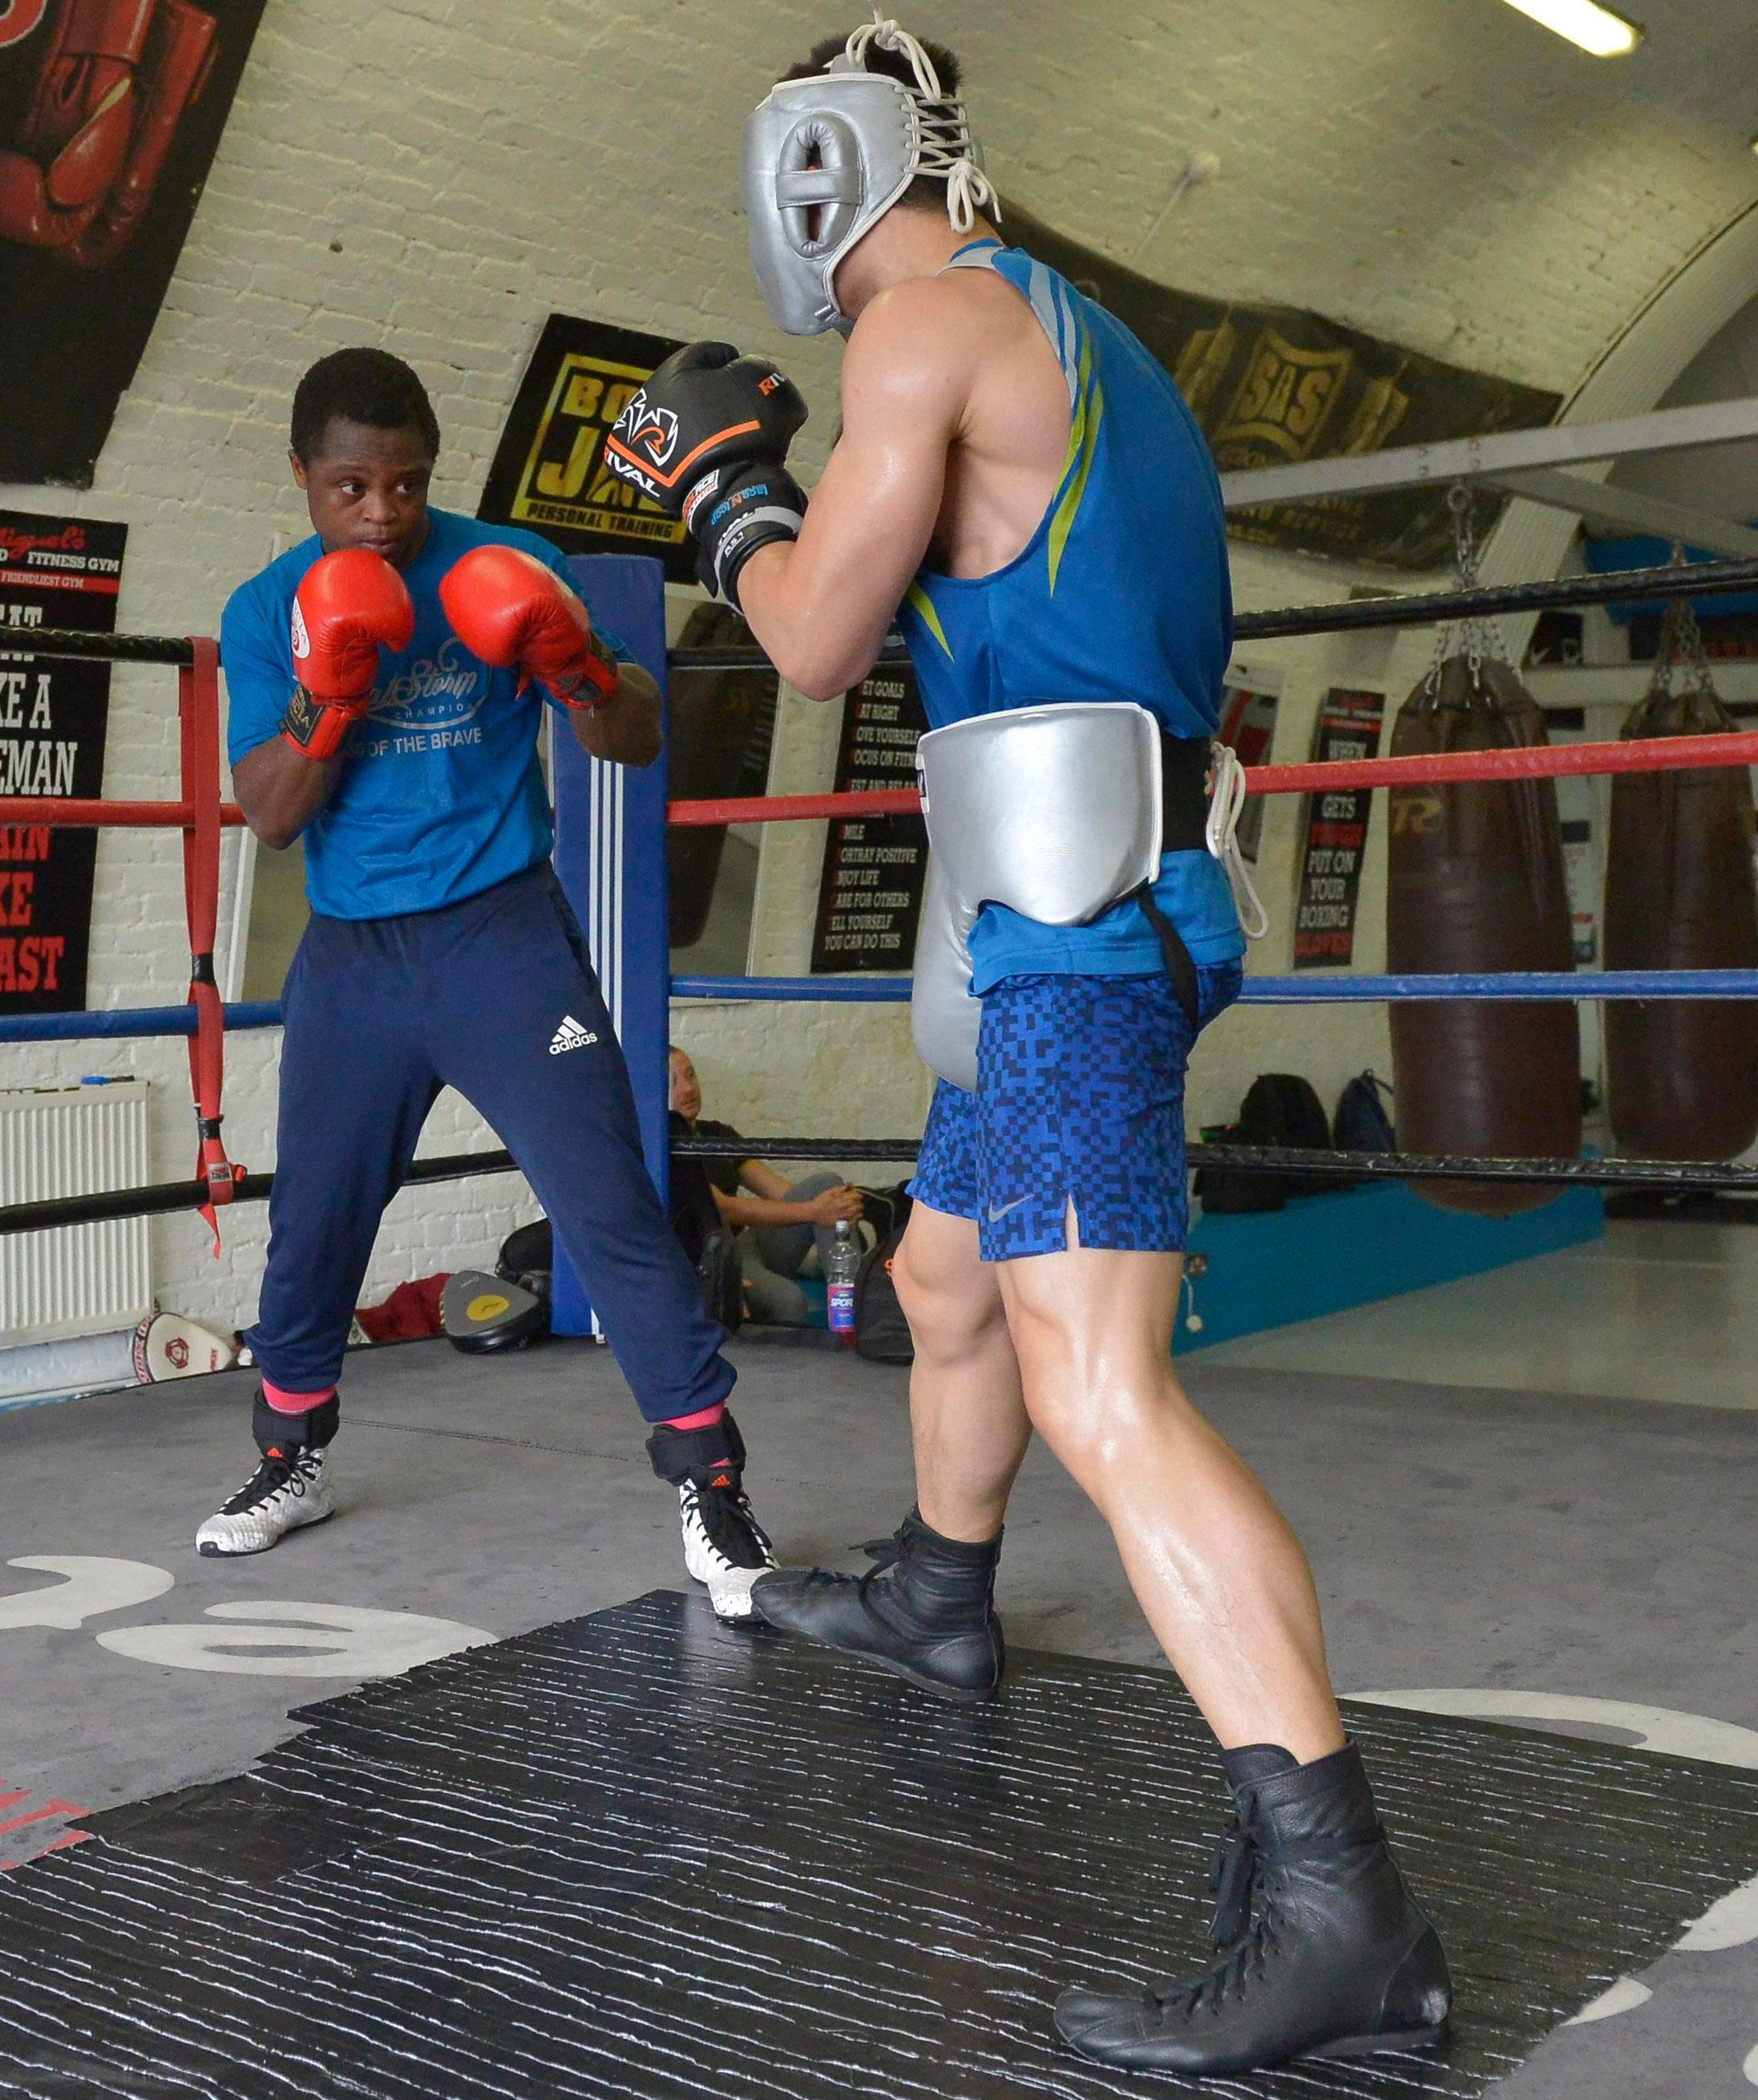 Many fighters in the super-bantamweight division tower over Dogboe